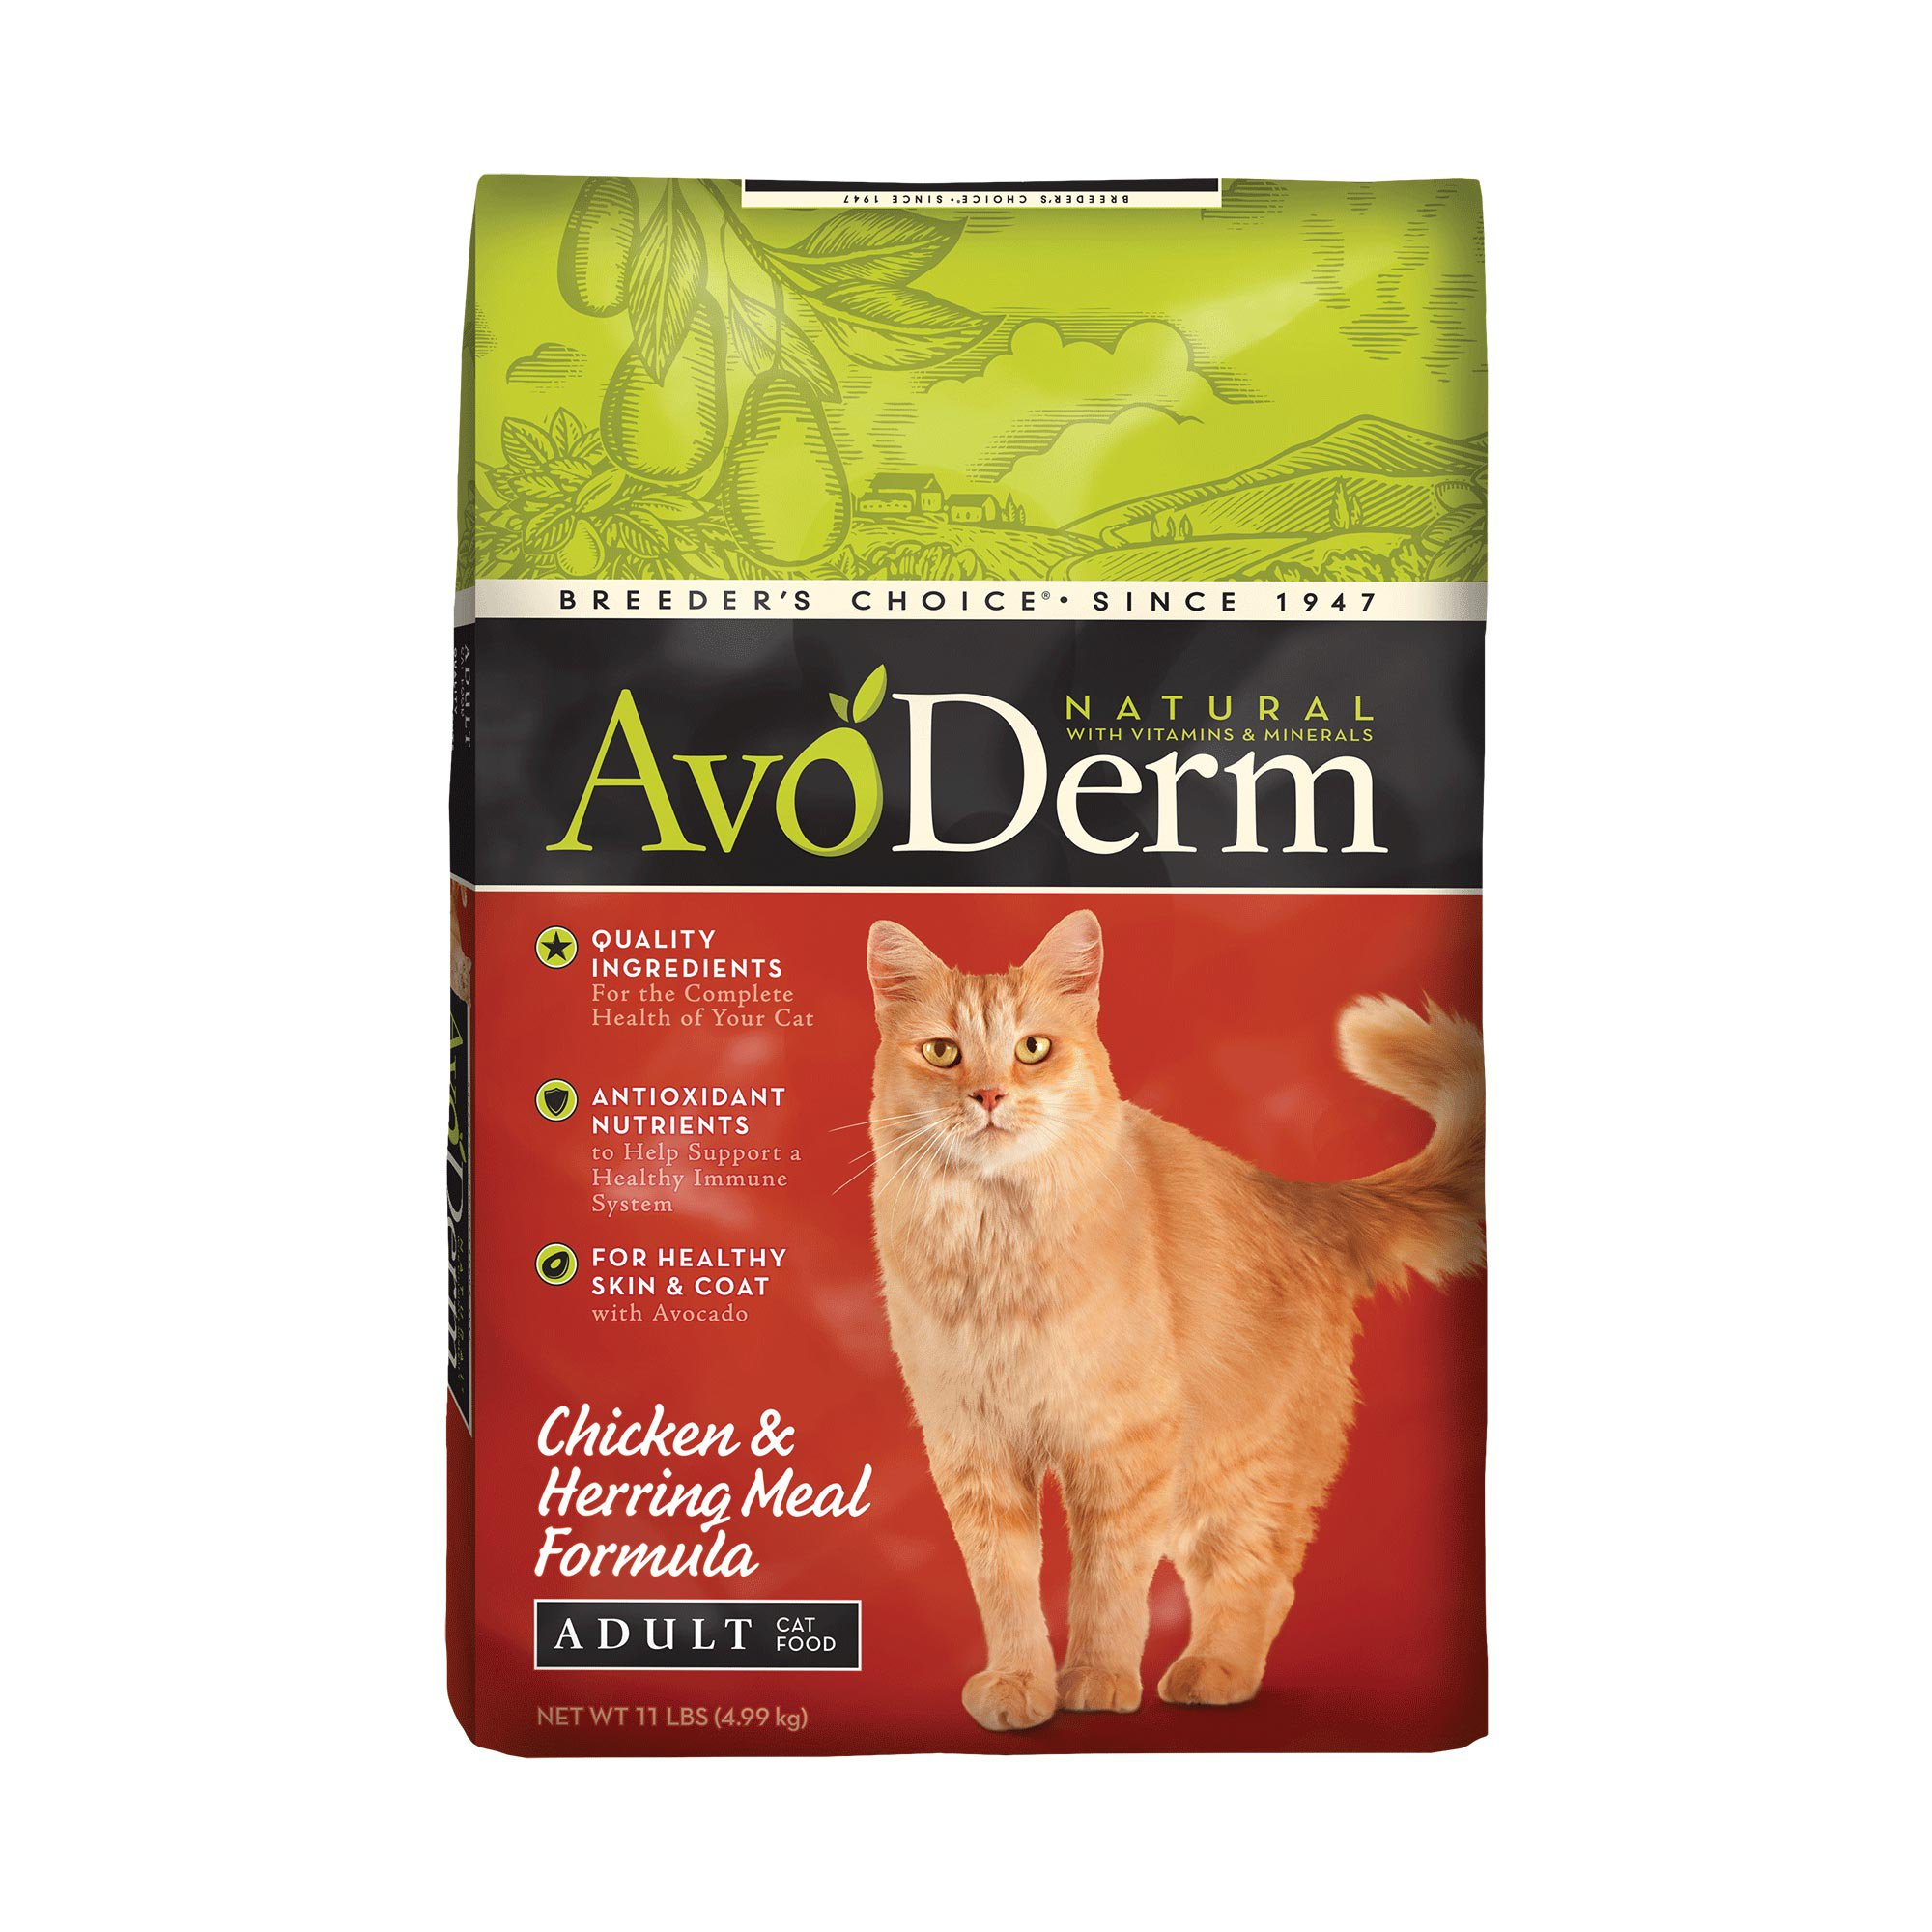 AvoDerm Natural Chicken & Herring Meal Adult Cat Food